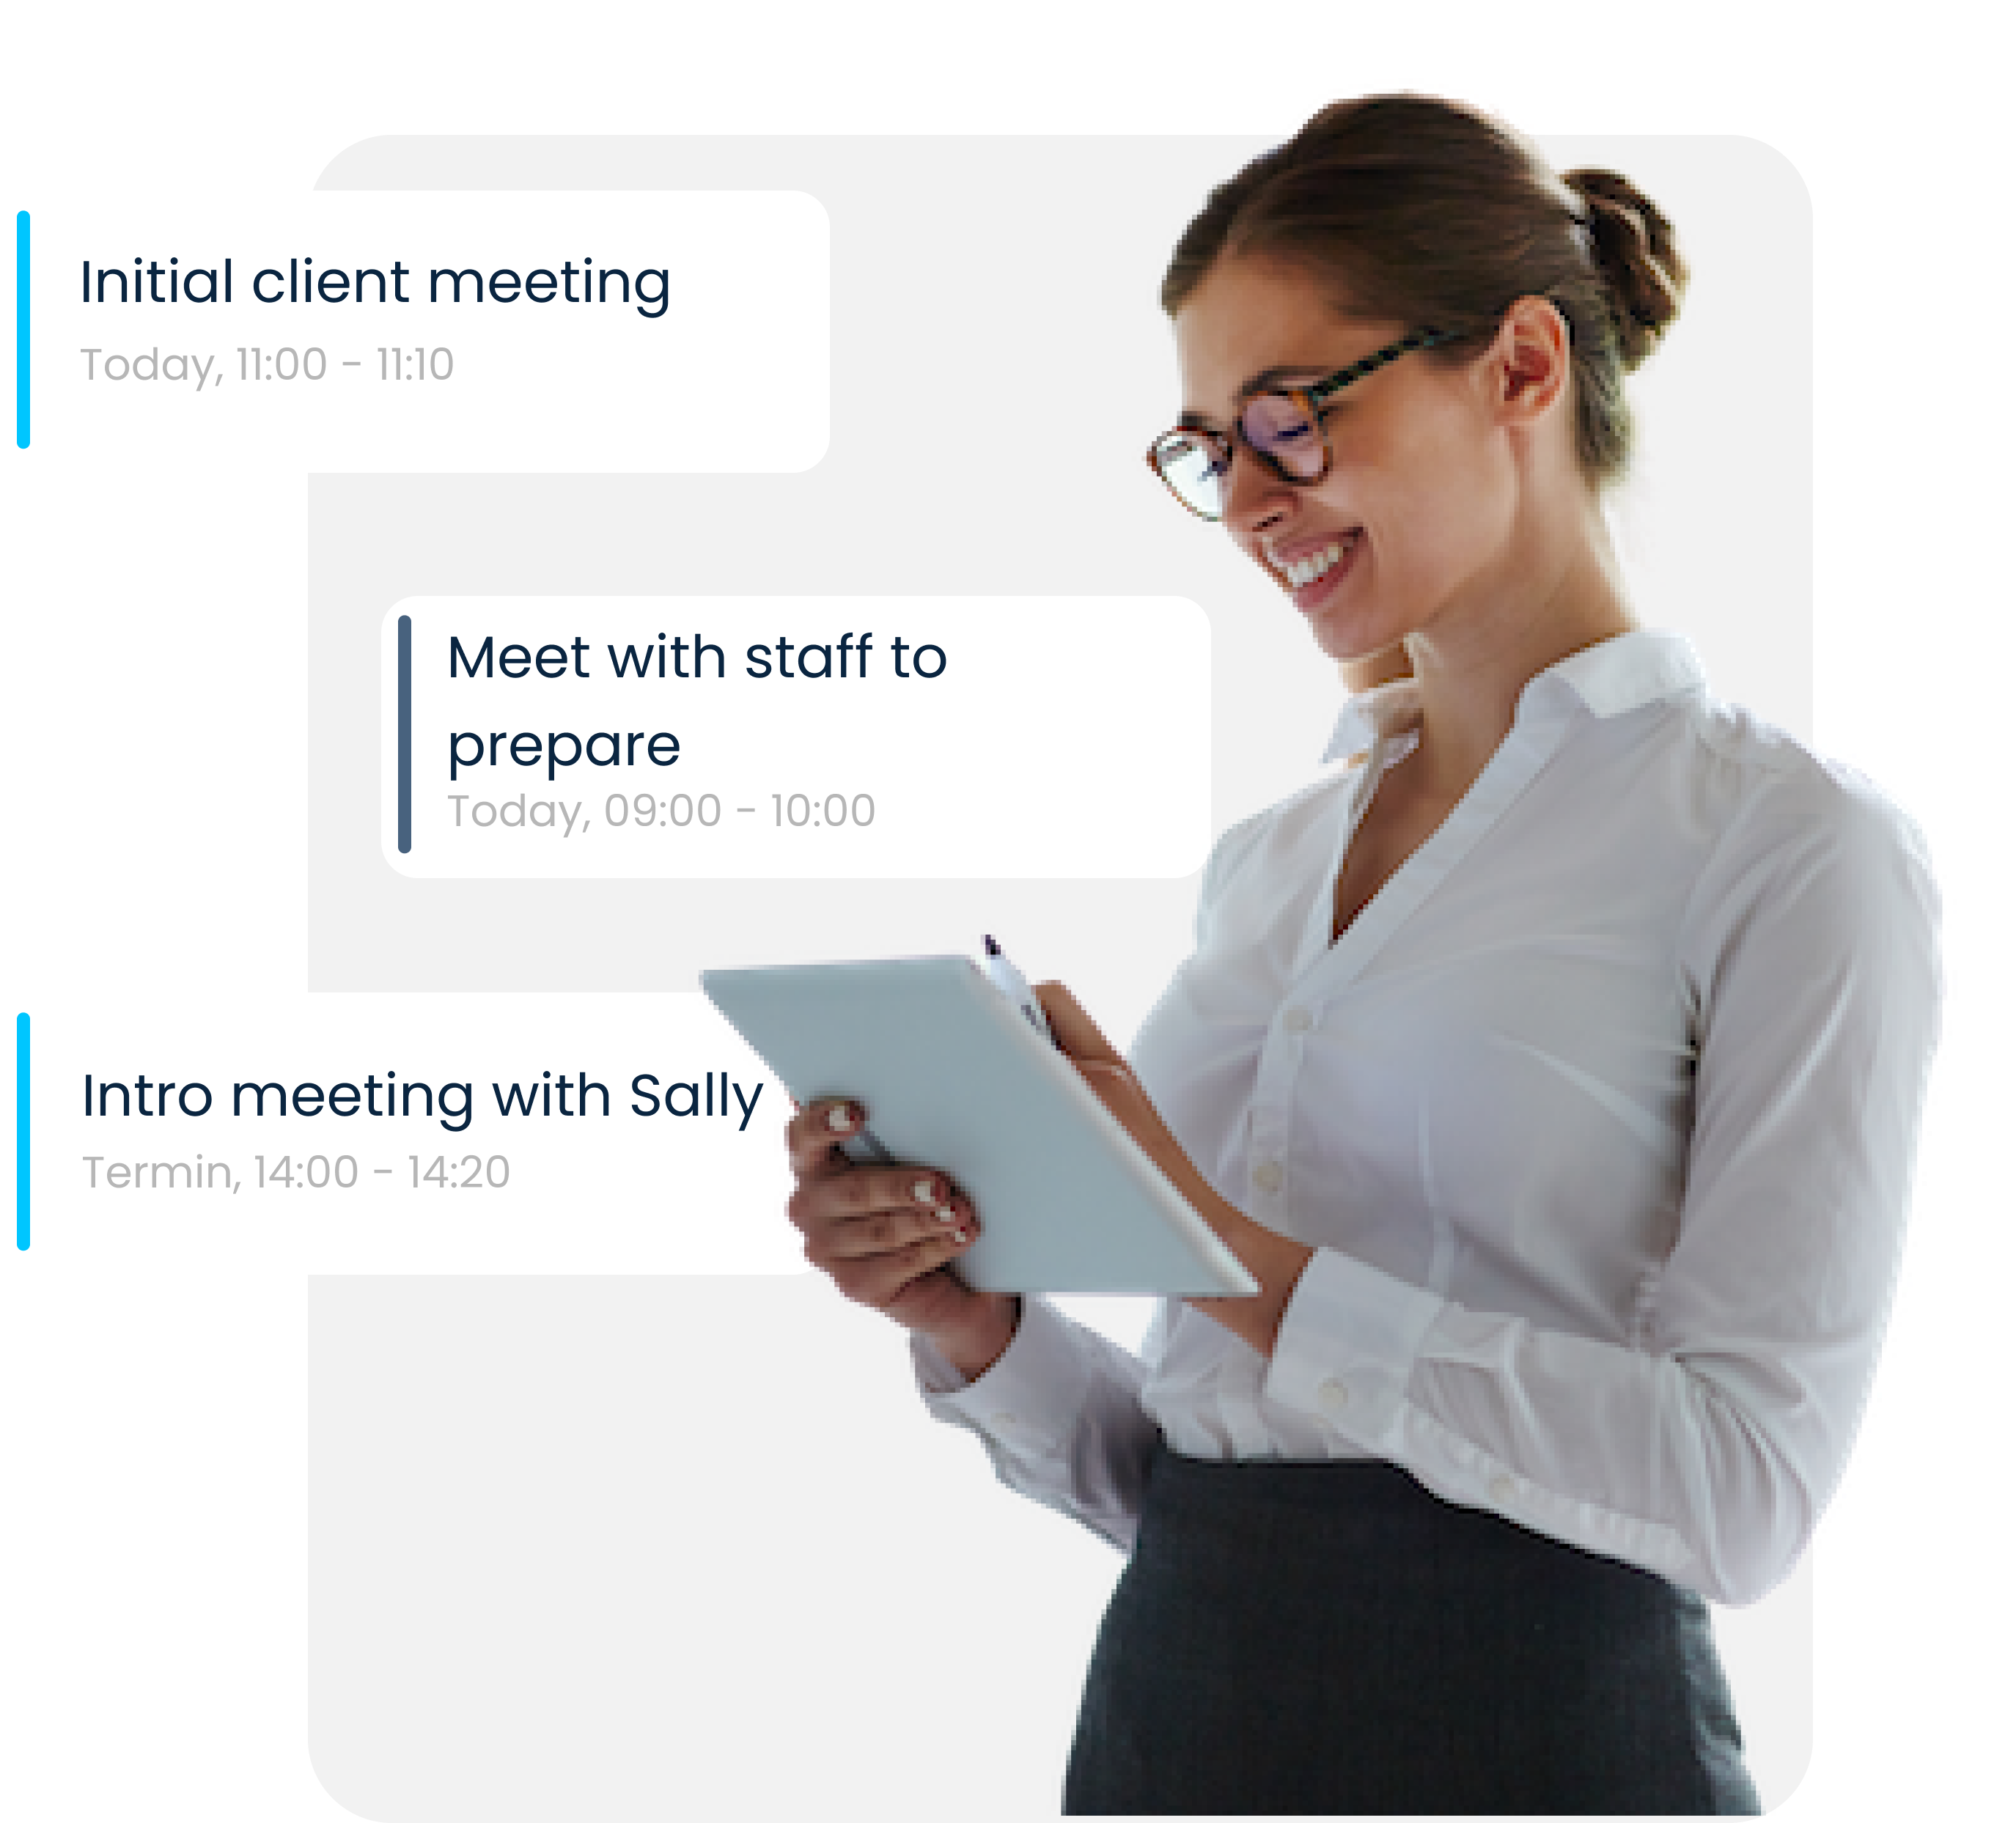 A financial advisor organizing her schedule with an online booking solution to meet with her clients